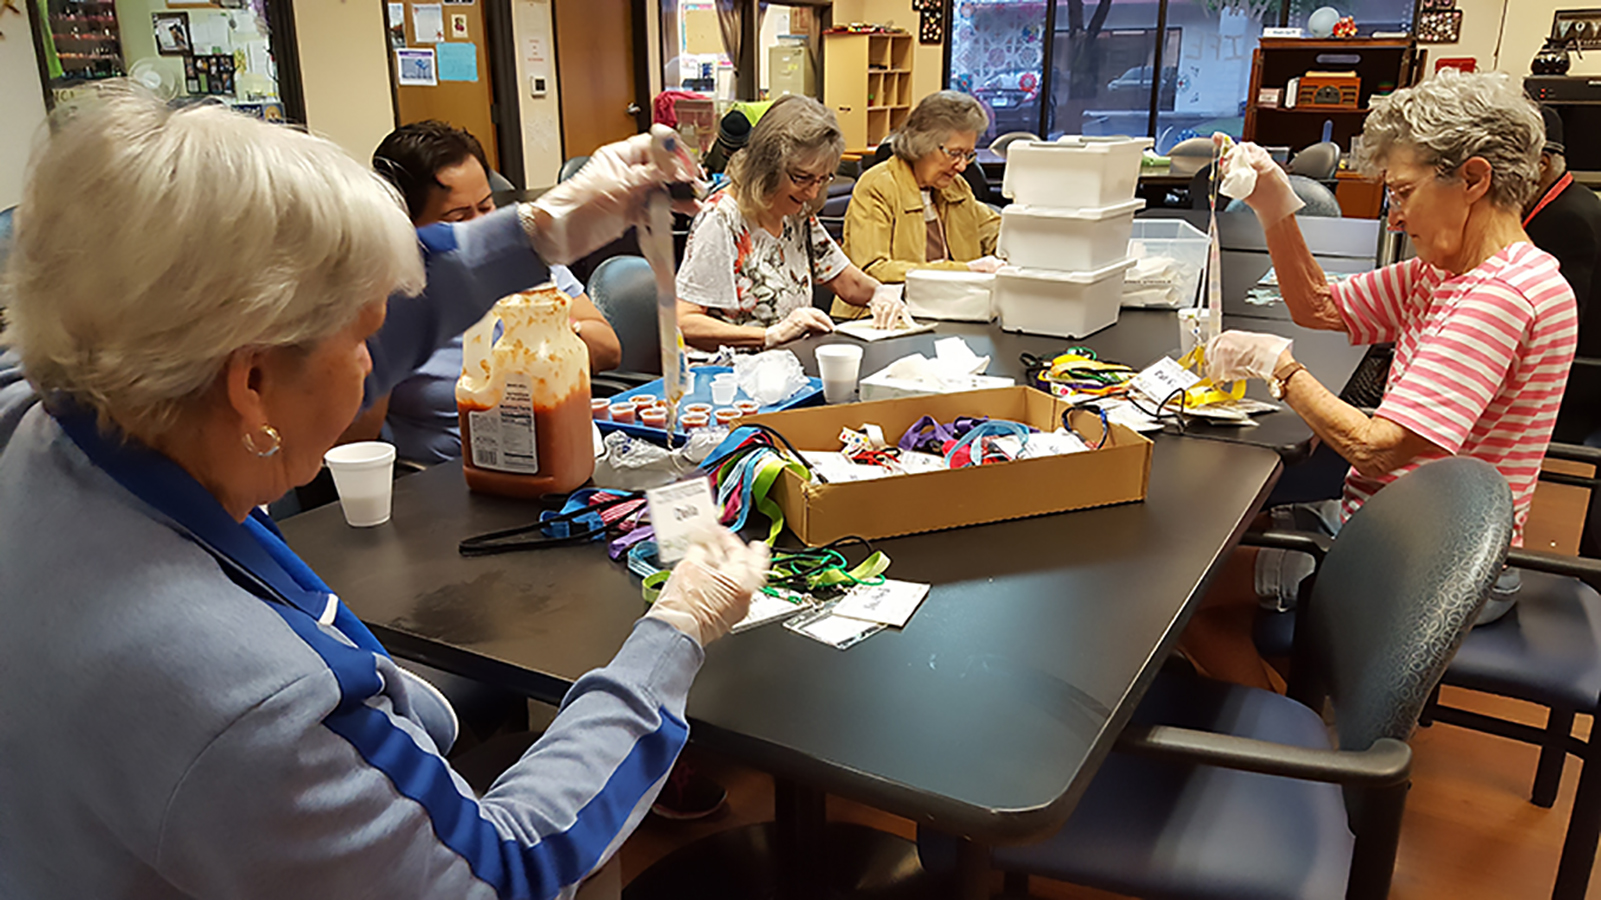 Members of the AGE Thrive Social and Wellness Center in Williamson County enjoy a day of socializing and creativity with art projects.